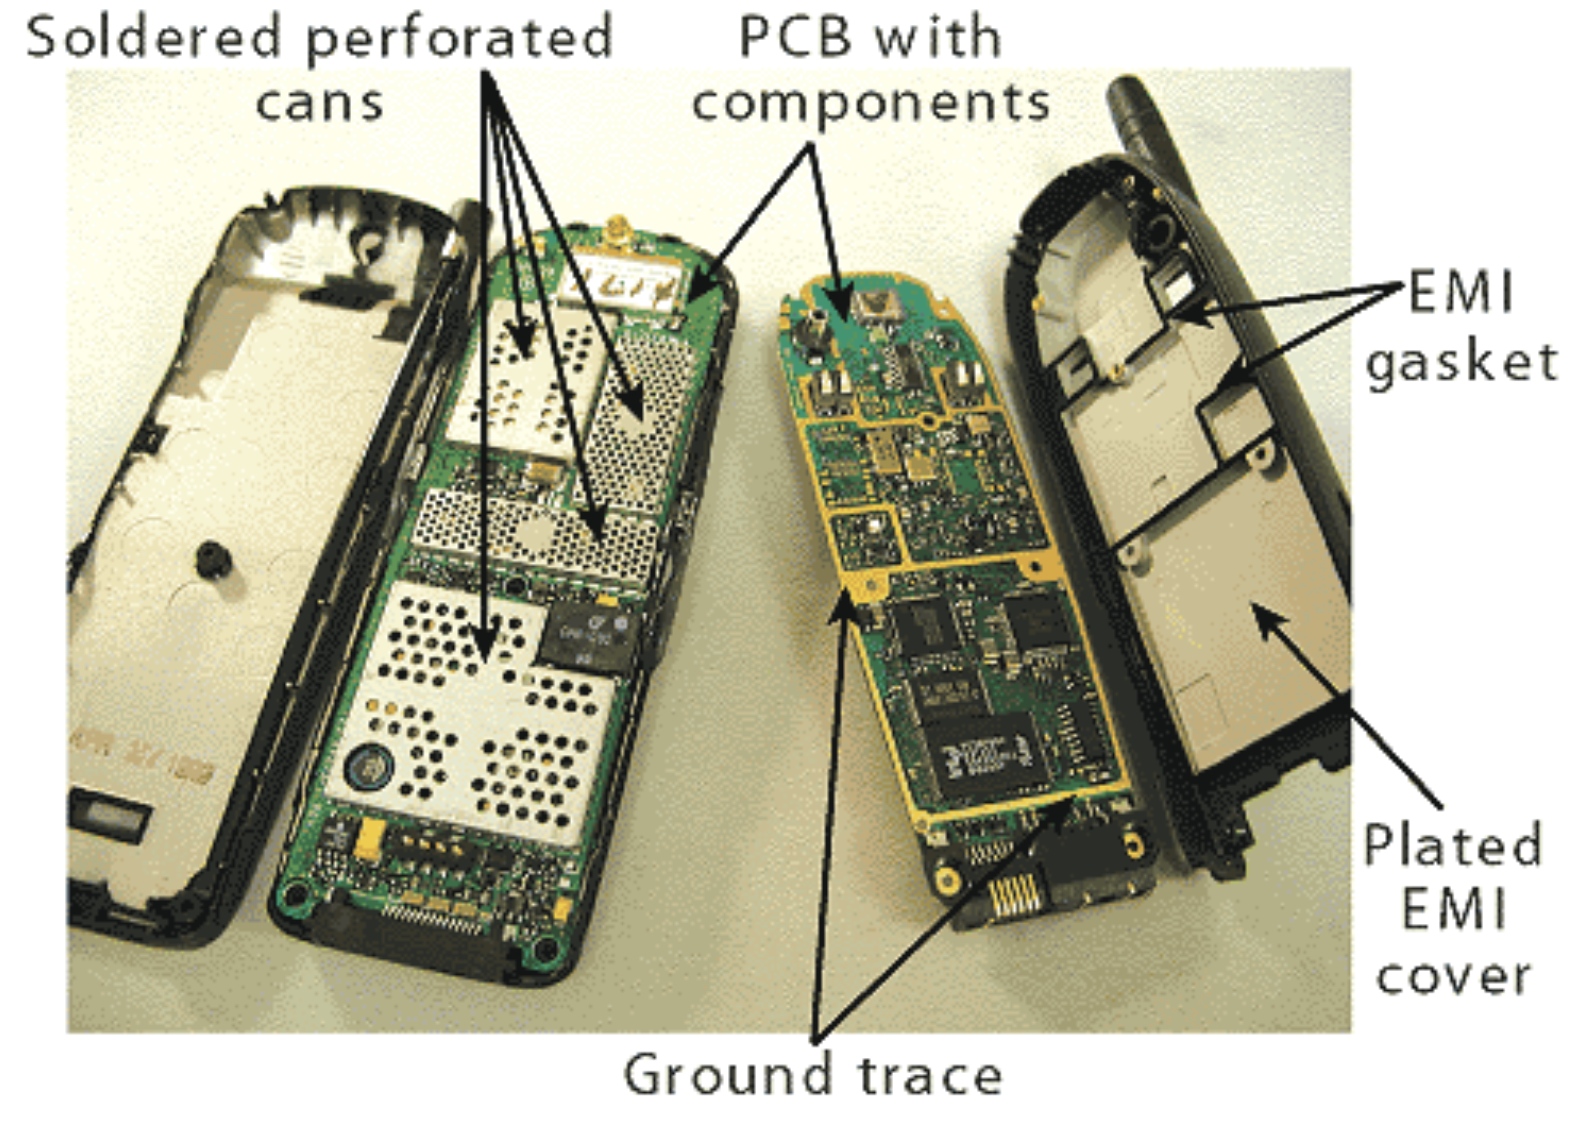 Mixed Signal Pcb Design Techniques Notes Full Specs And Recommended Reference Designs Can Be Additive Manufacturing Where We Print Metal On Plastic Or Incorporate Emi Shielding With The Product Housing May Next Idea In Isolating